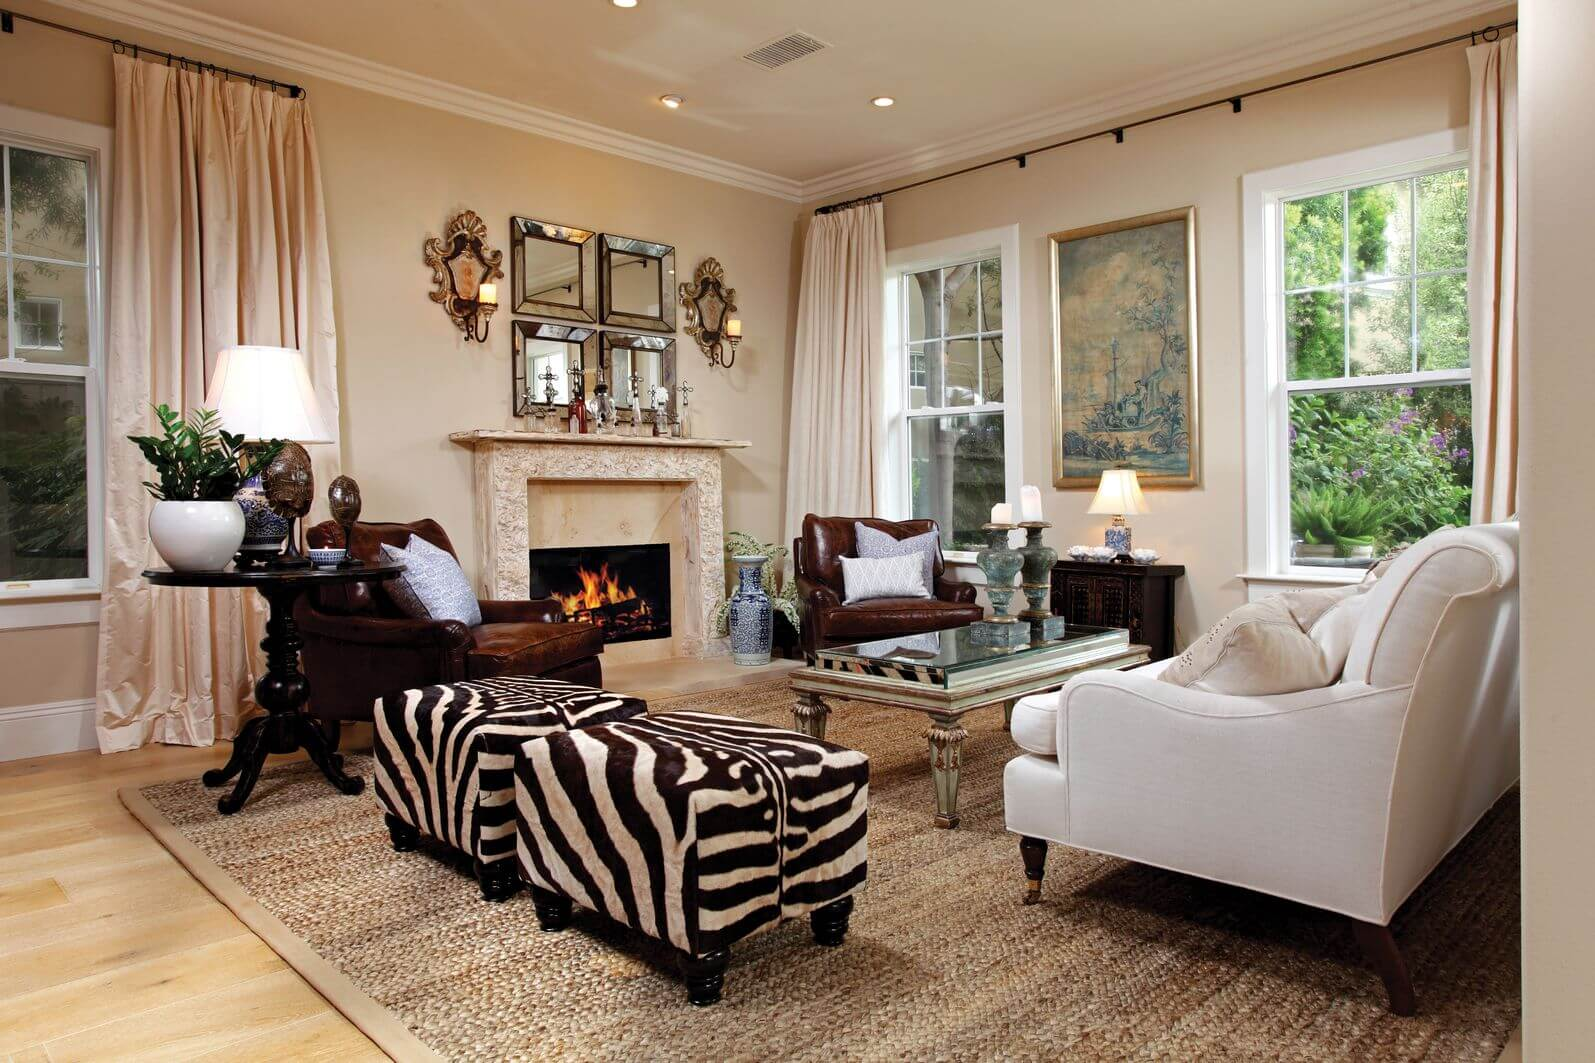 17 zebra living room decor ideas pictures for Living room ideas zebra